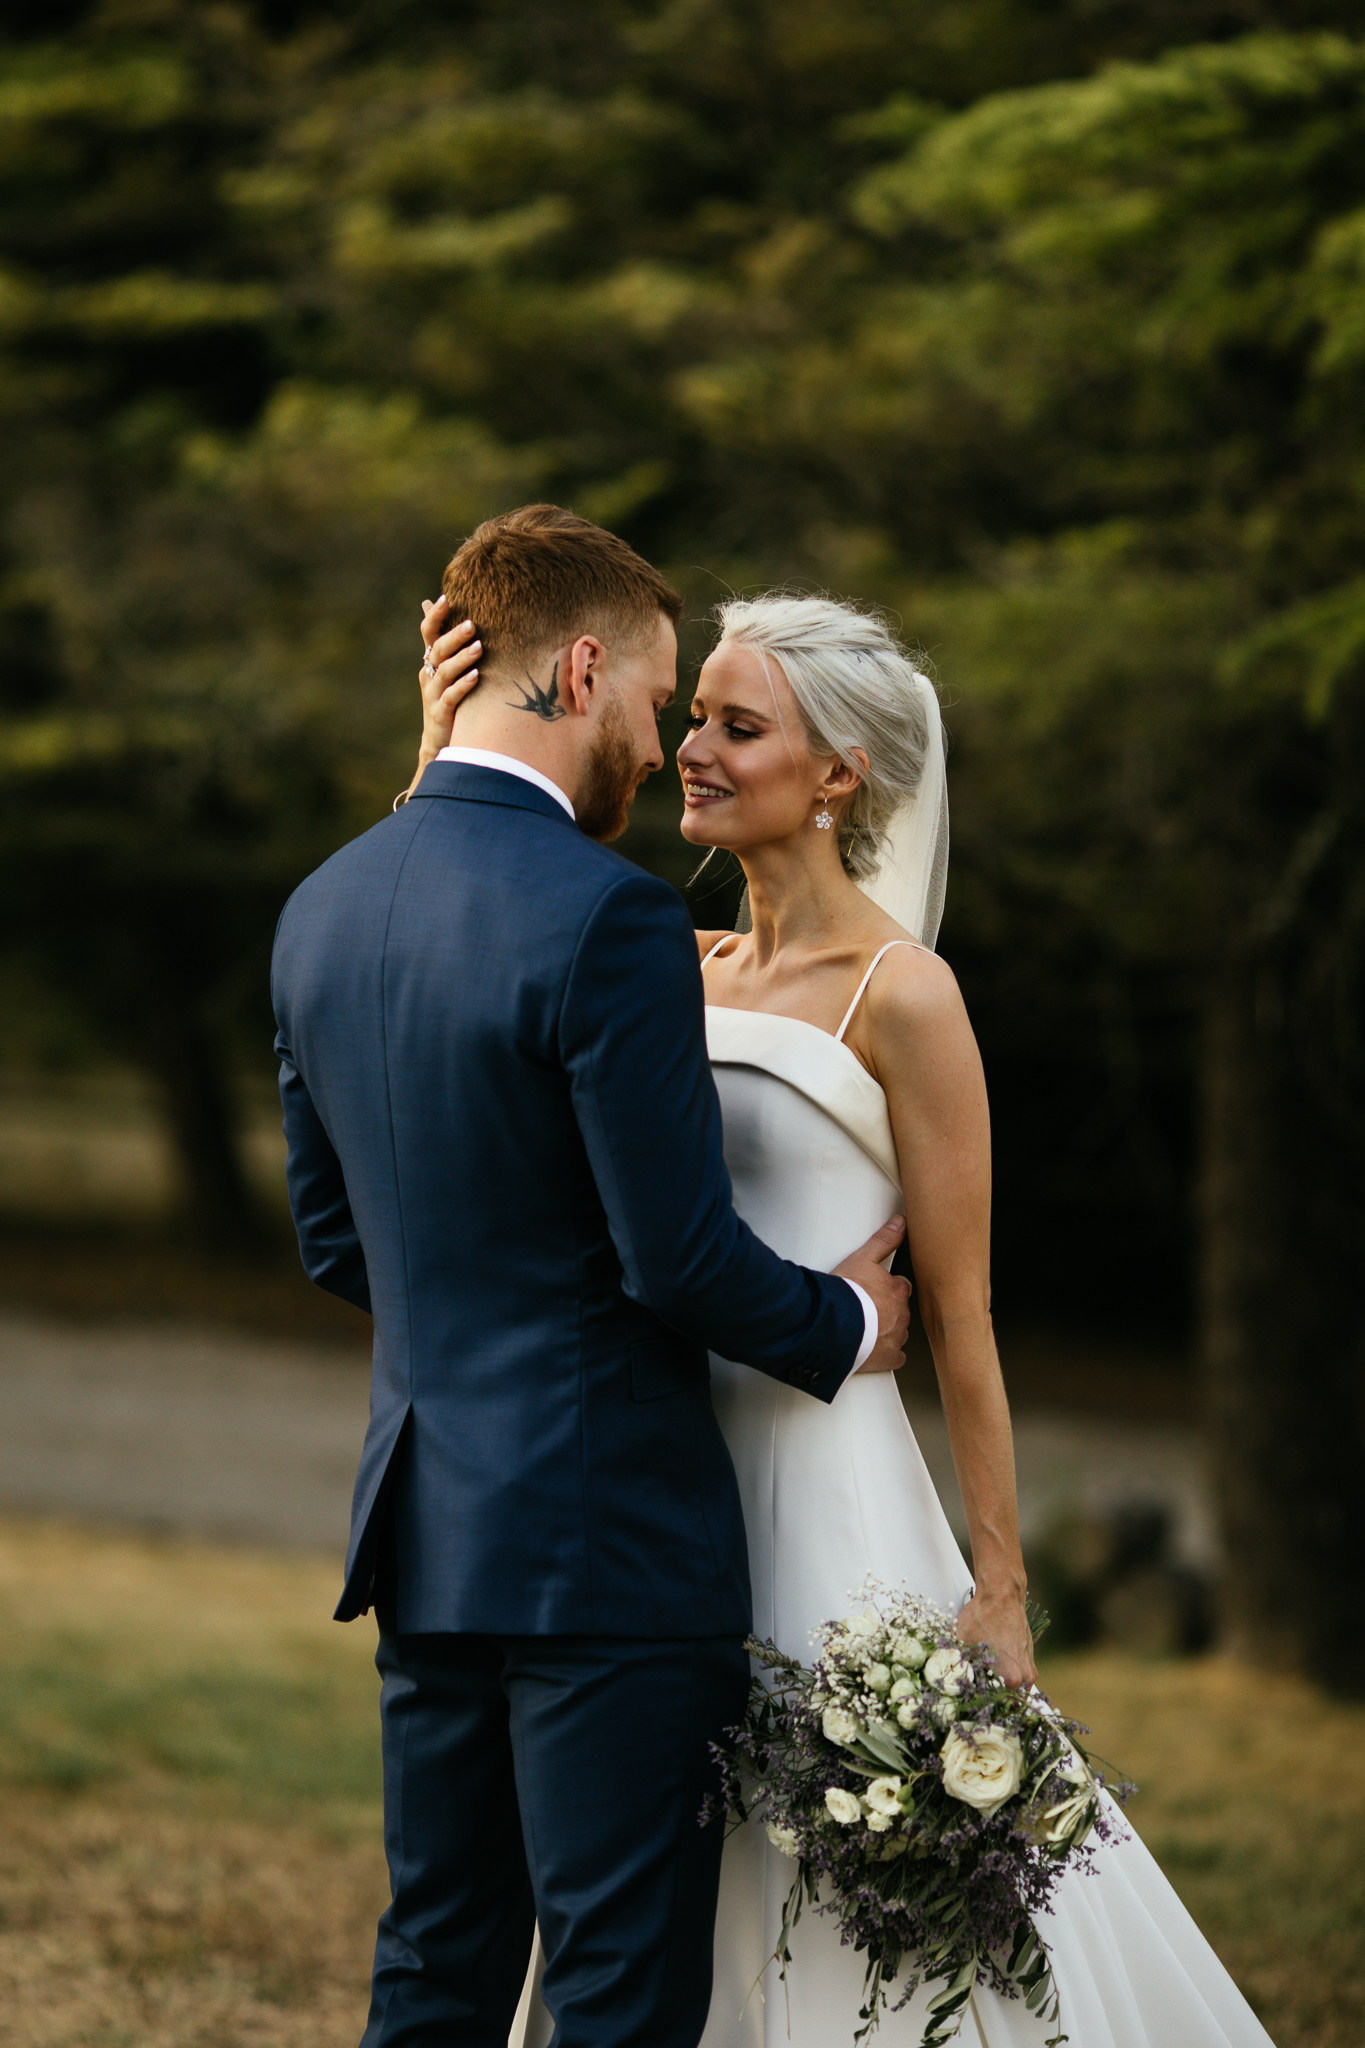 Victoria Magrath of inthefrow stands looking at her new husband in a Phillipa Lepley wedding gown on their wedding day.